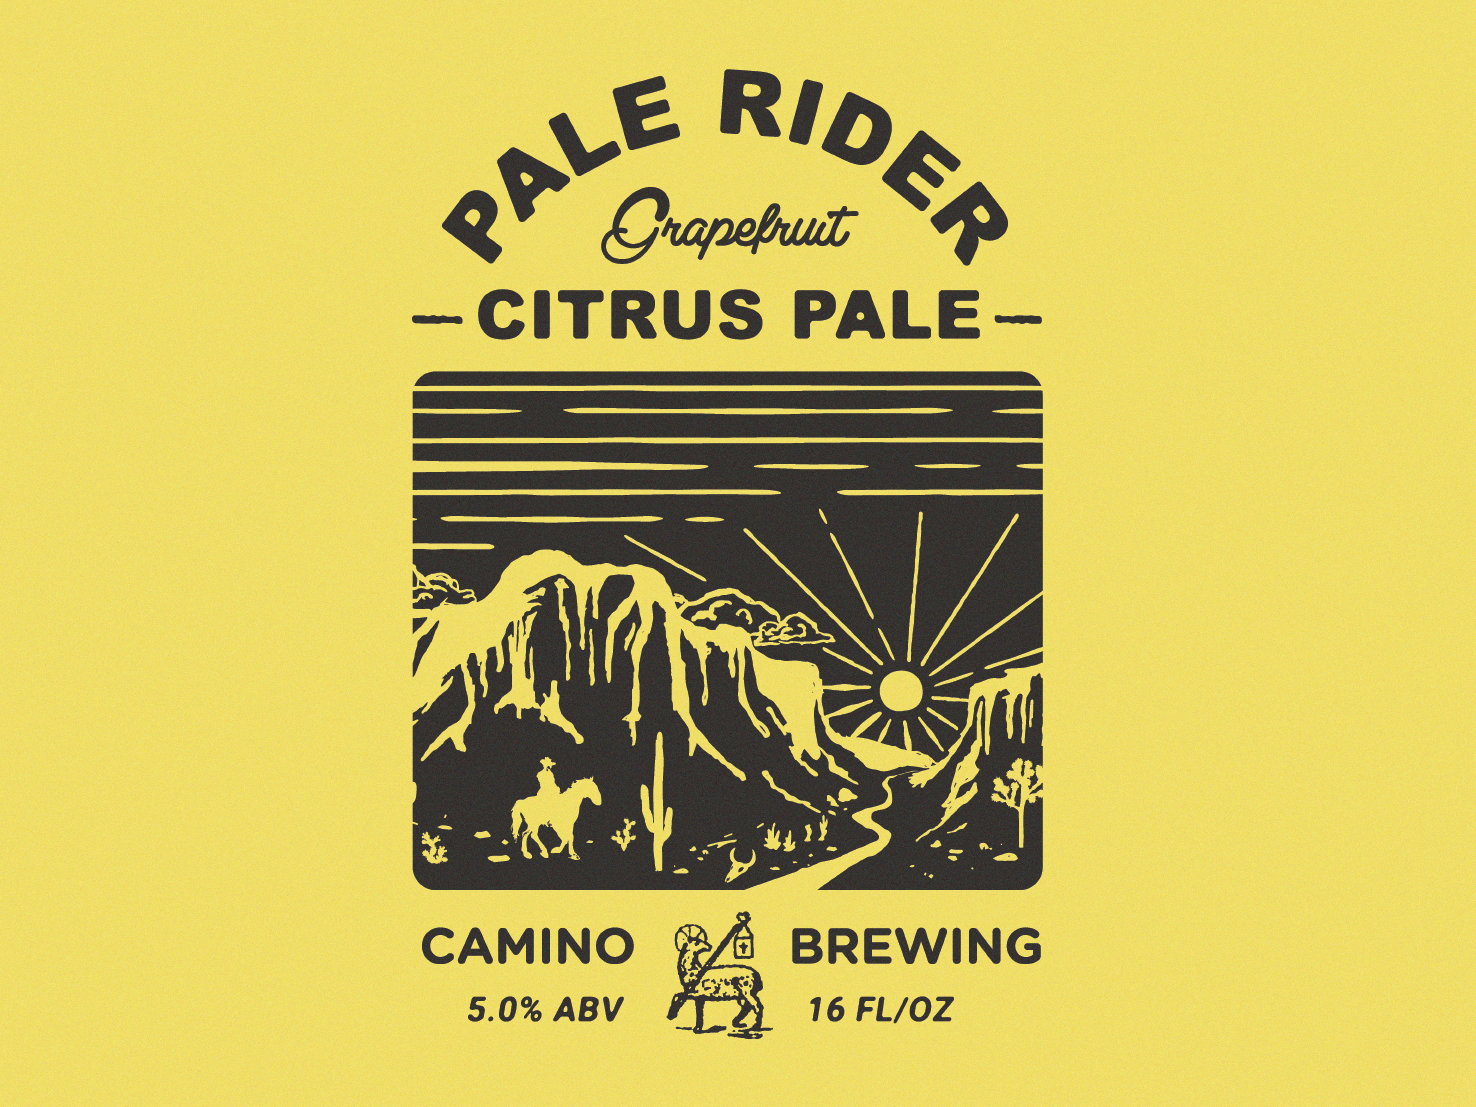 Camino Pale Rider camino desert southwest outdoors design illustration beer beer branding